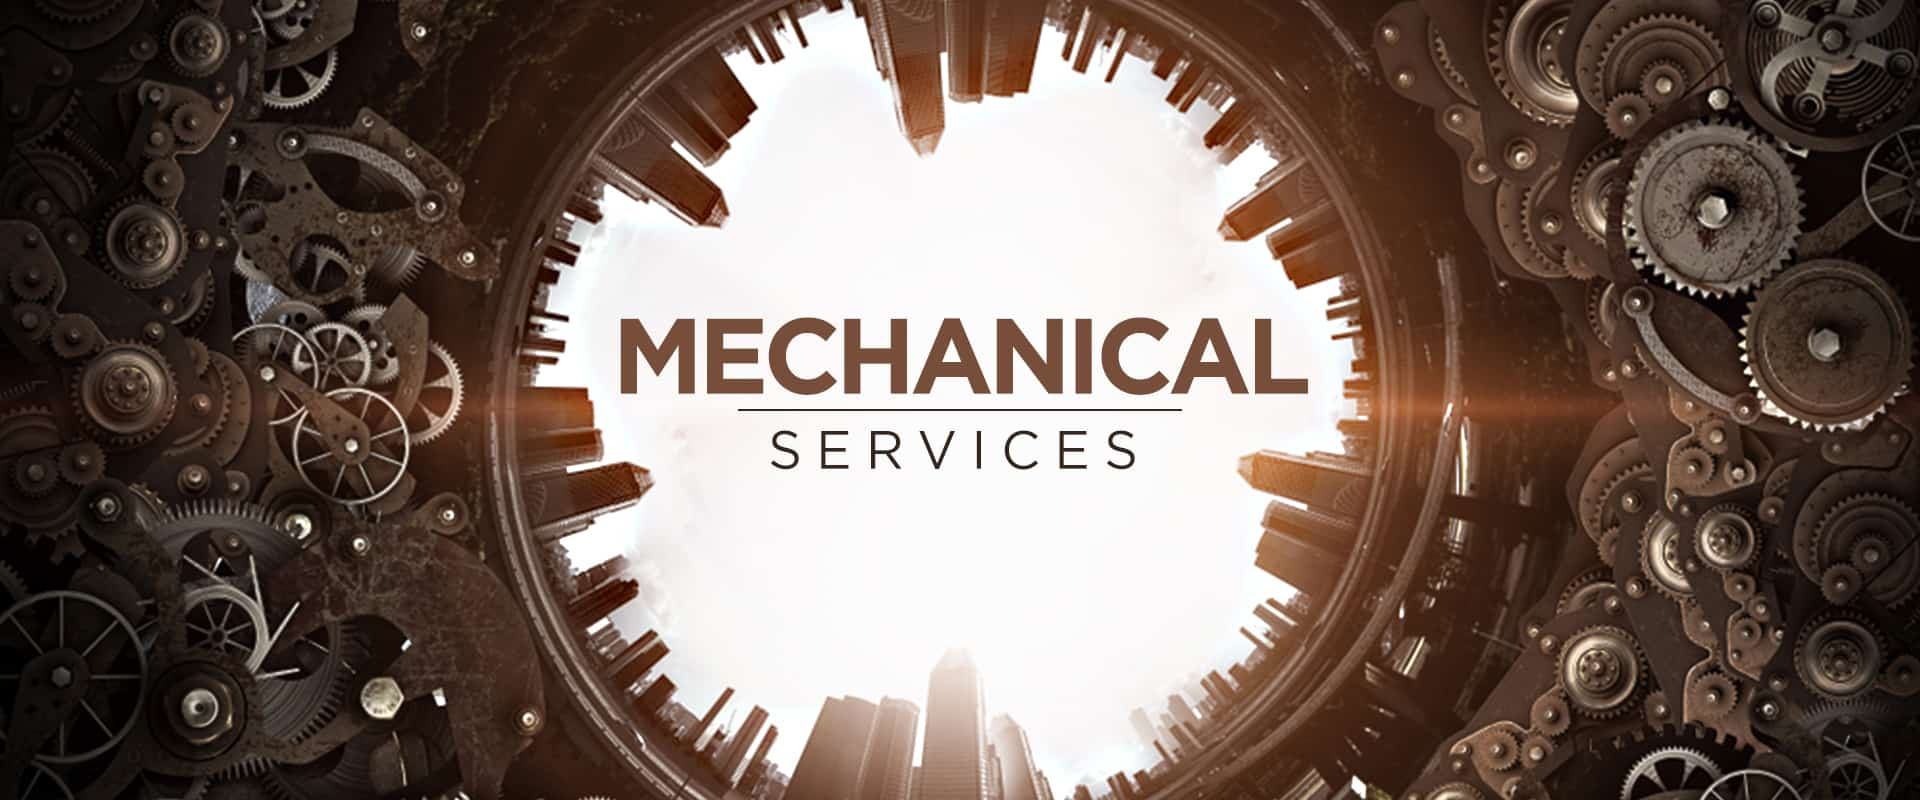 Mechanincal-services-viratmep